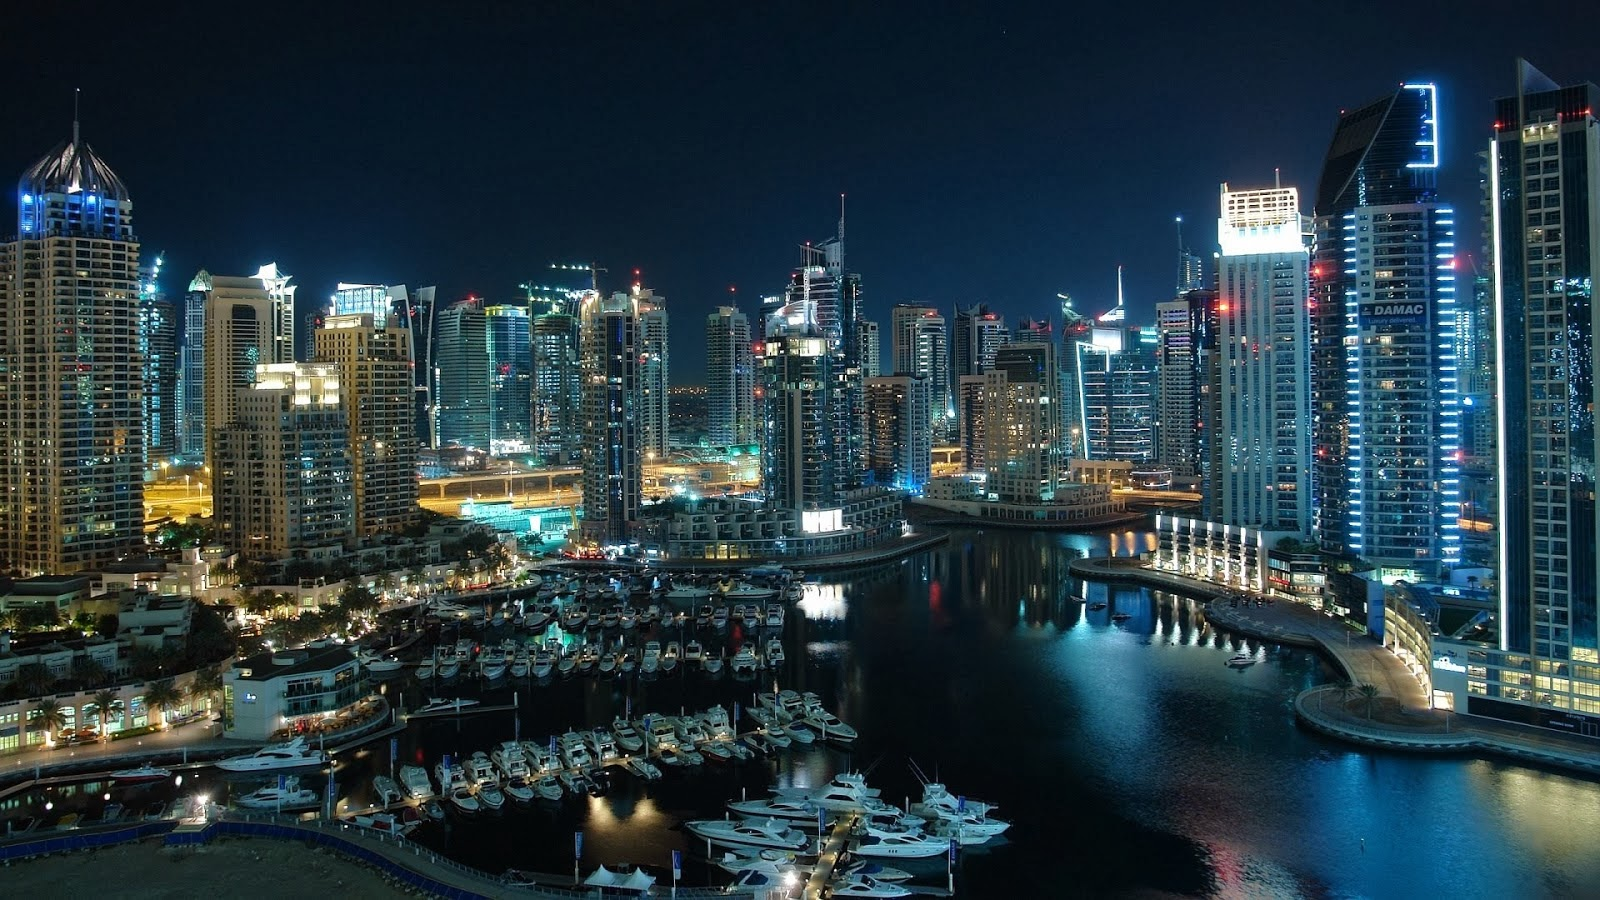 hd wallpapers download dubai city hd wallpapers 1080p